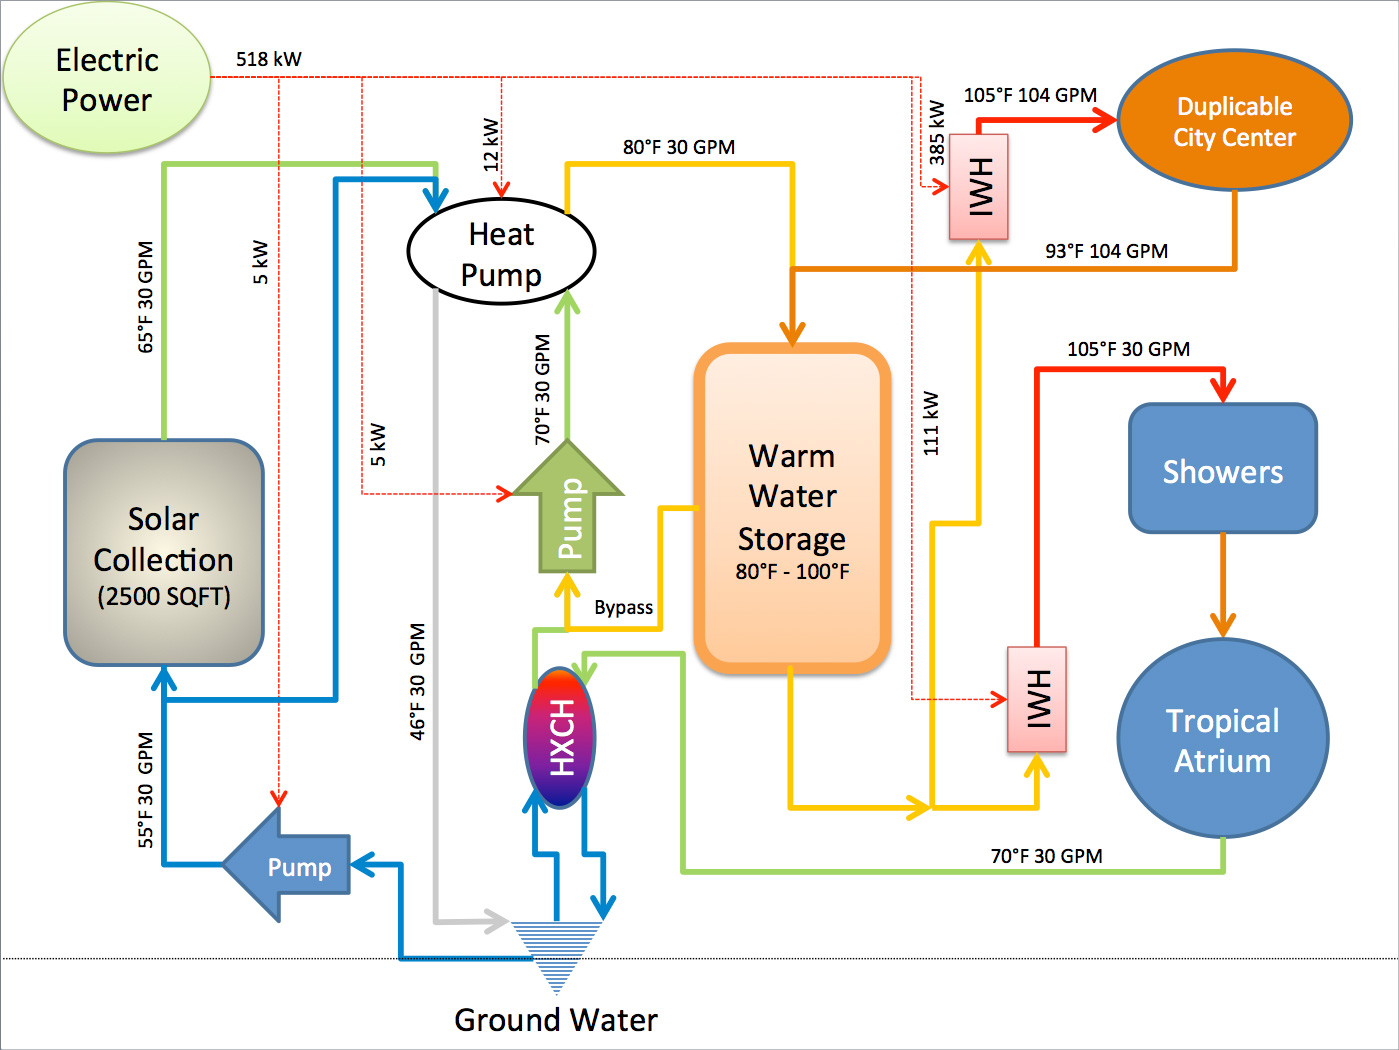 Sustainable Water Heating Tank Vs Tankless Vs Heat Pumps In Off Grid Living Situations